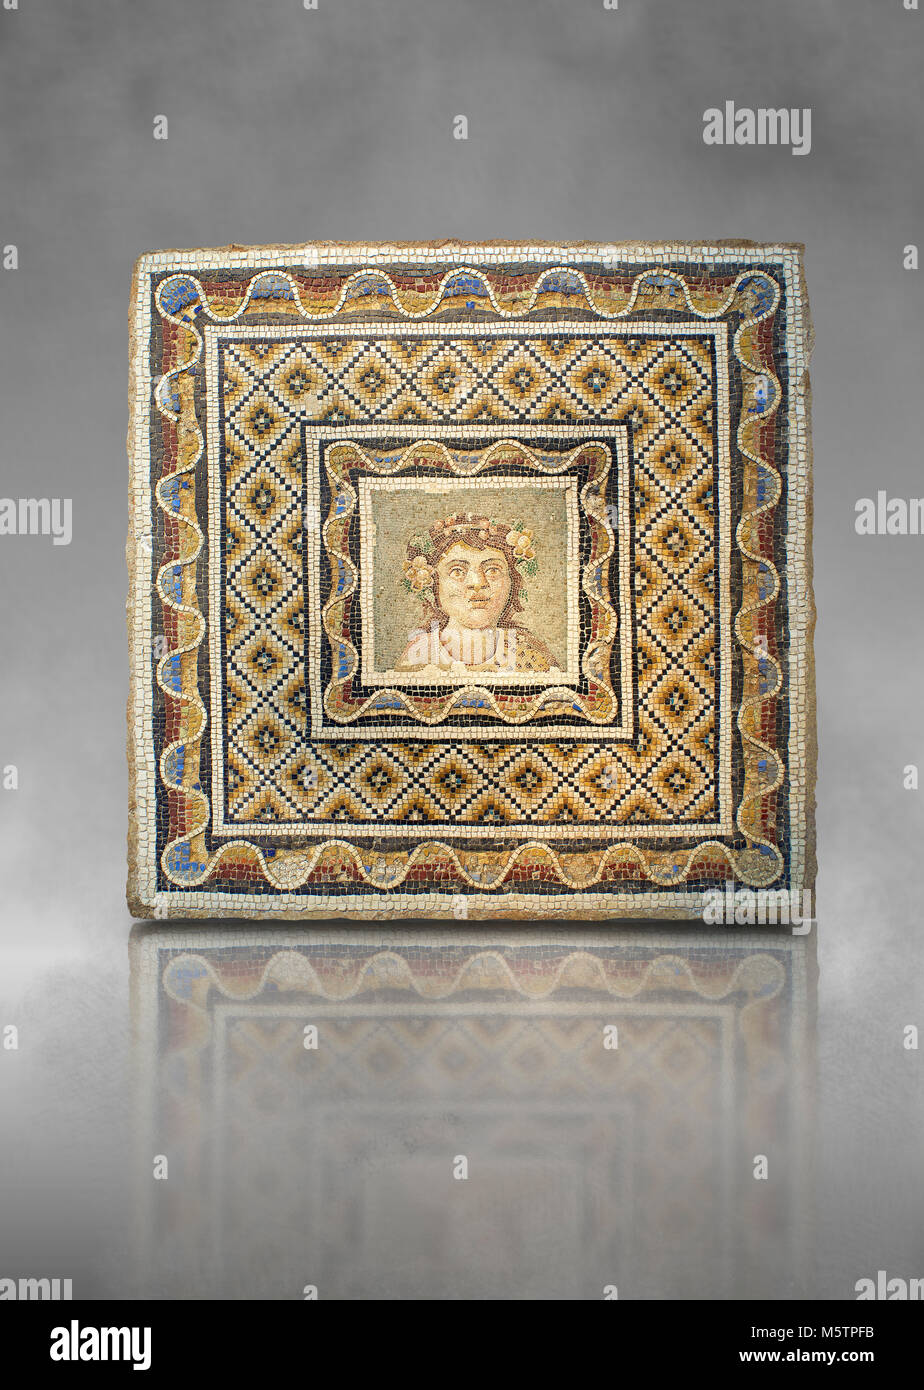 Roman mosaic of a bust of Dionysus from the Via Flaminia, Rome. 3rd century AD. National Roman Museum, Rome, Italy - Stock Image